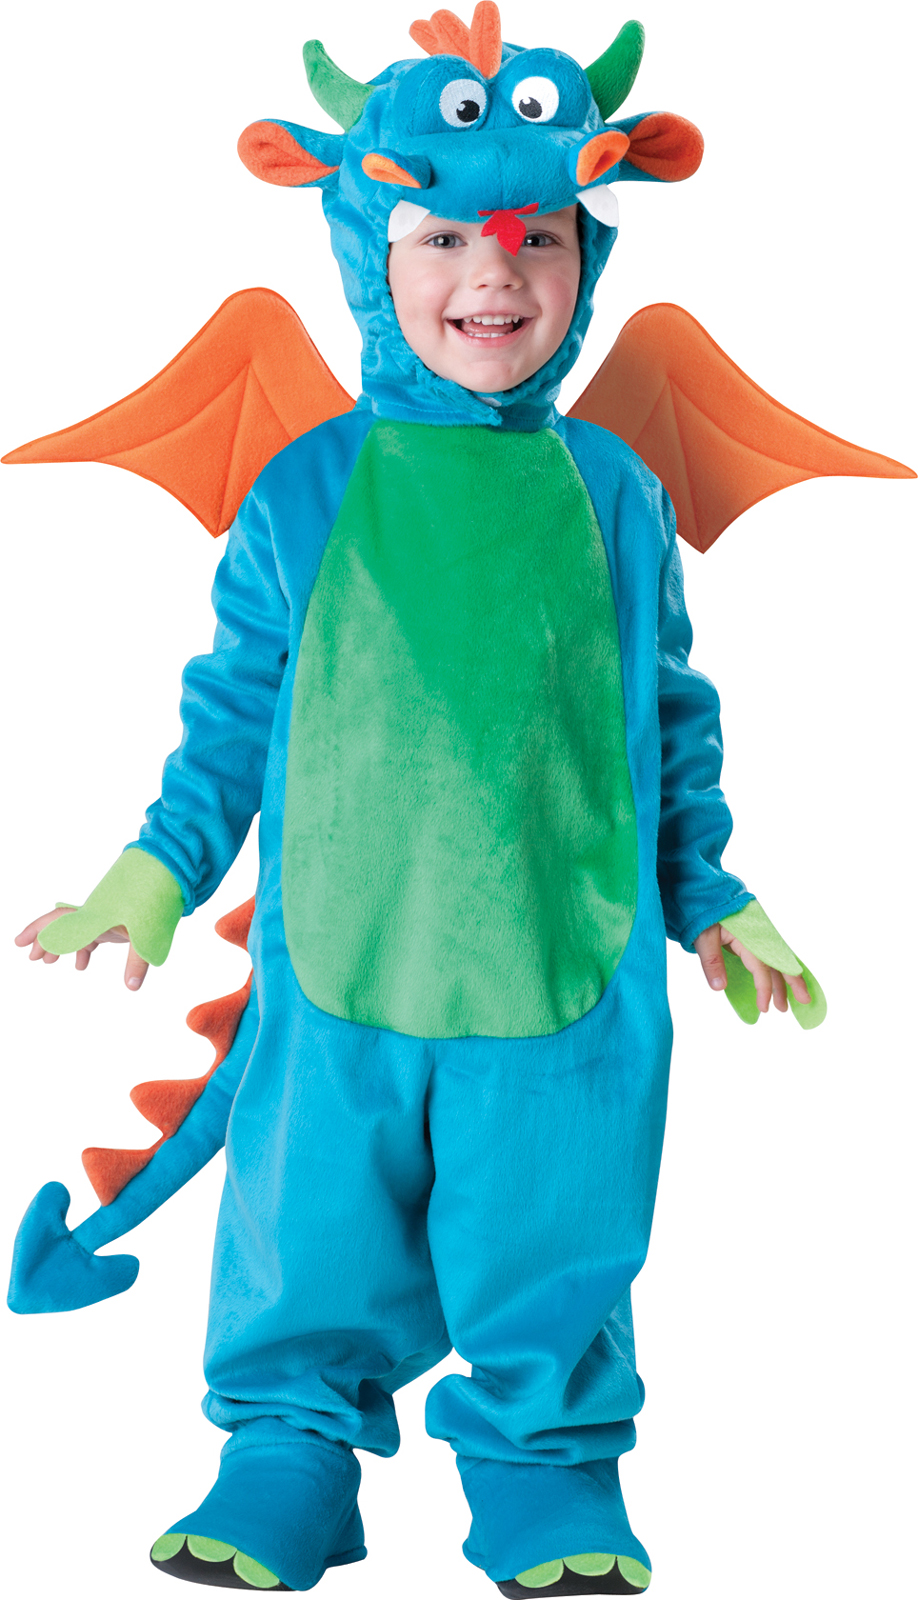 In Character Costumes Adult Dinky Dragon Toddler Costume- Blue: 4T